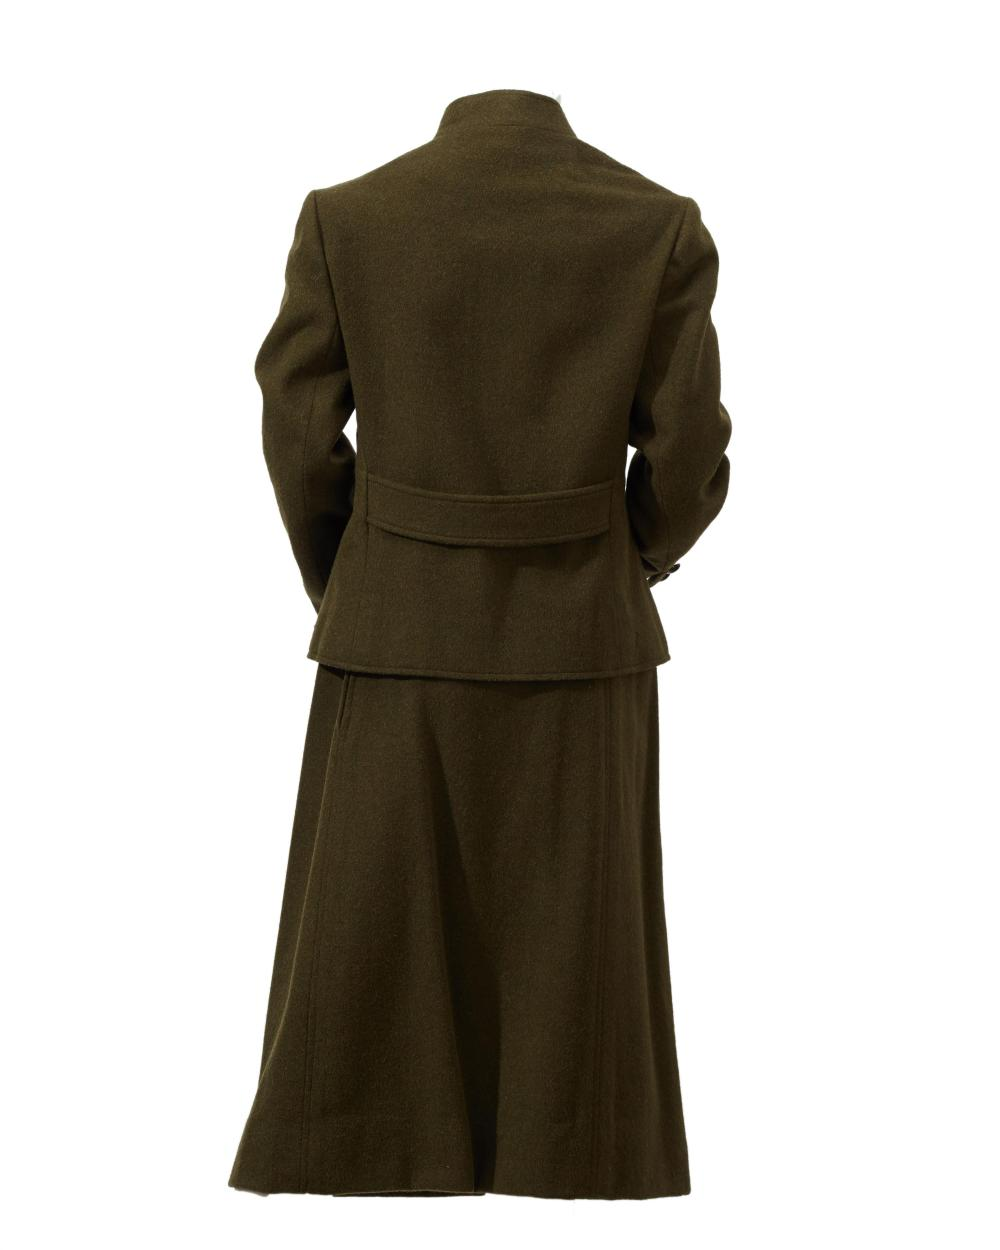 A Givenchy green wool skirt suit